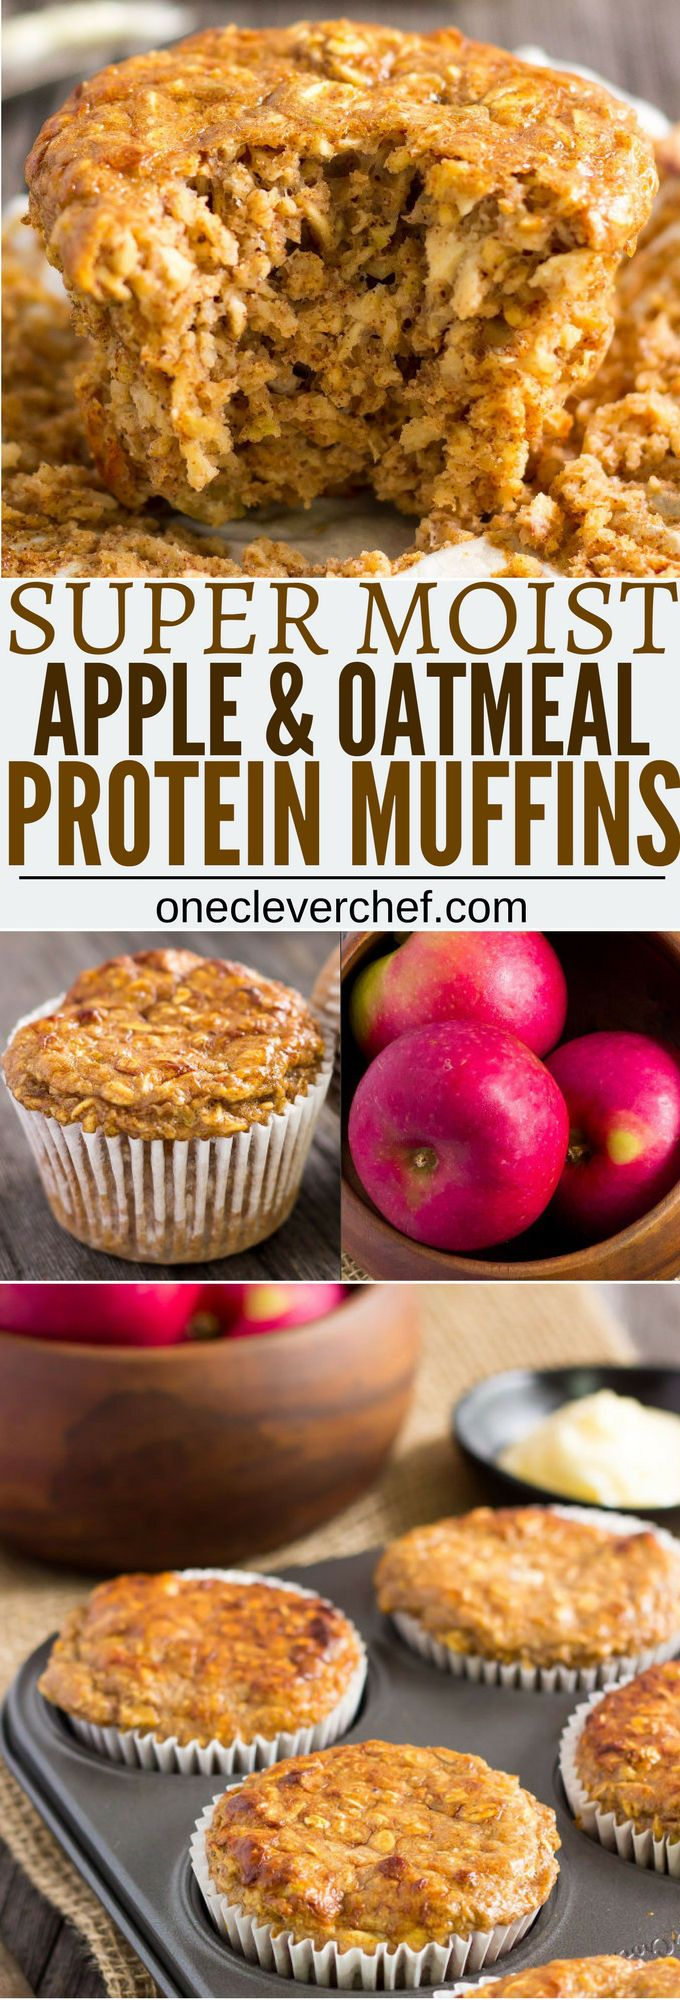 I love these super moist and tender apple protein muffins. These yummy little ones are protein-packed, 100% healthy, naturally sweetened with maple syrup (could be replaced with honey) and extra easy to make. They are the perfect on-the-go clean eating breakfast or post-workout lunch. These are also gluten-free, dairy-free and can be made vegan by replacing the eggs with flax eggs or applesauce.  onecleverchef.com